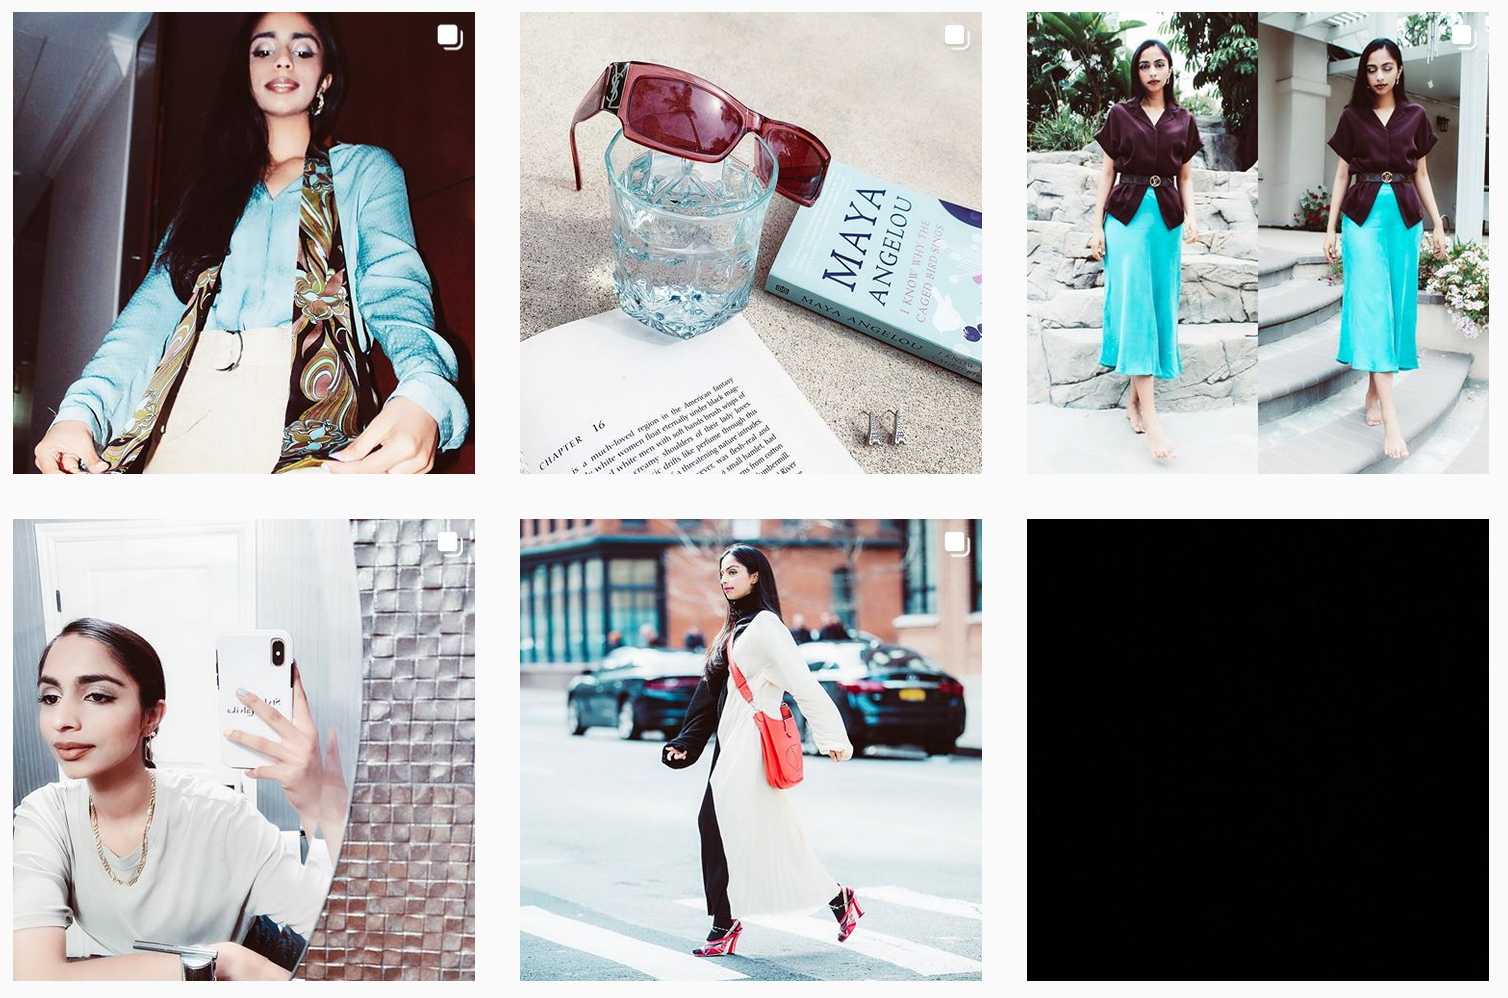 Malvika | Top 5 up and coming fashion influencers